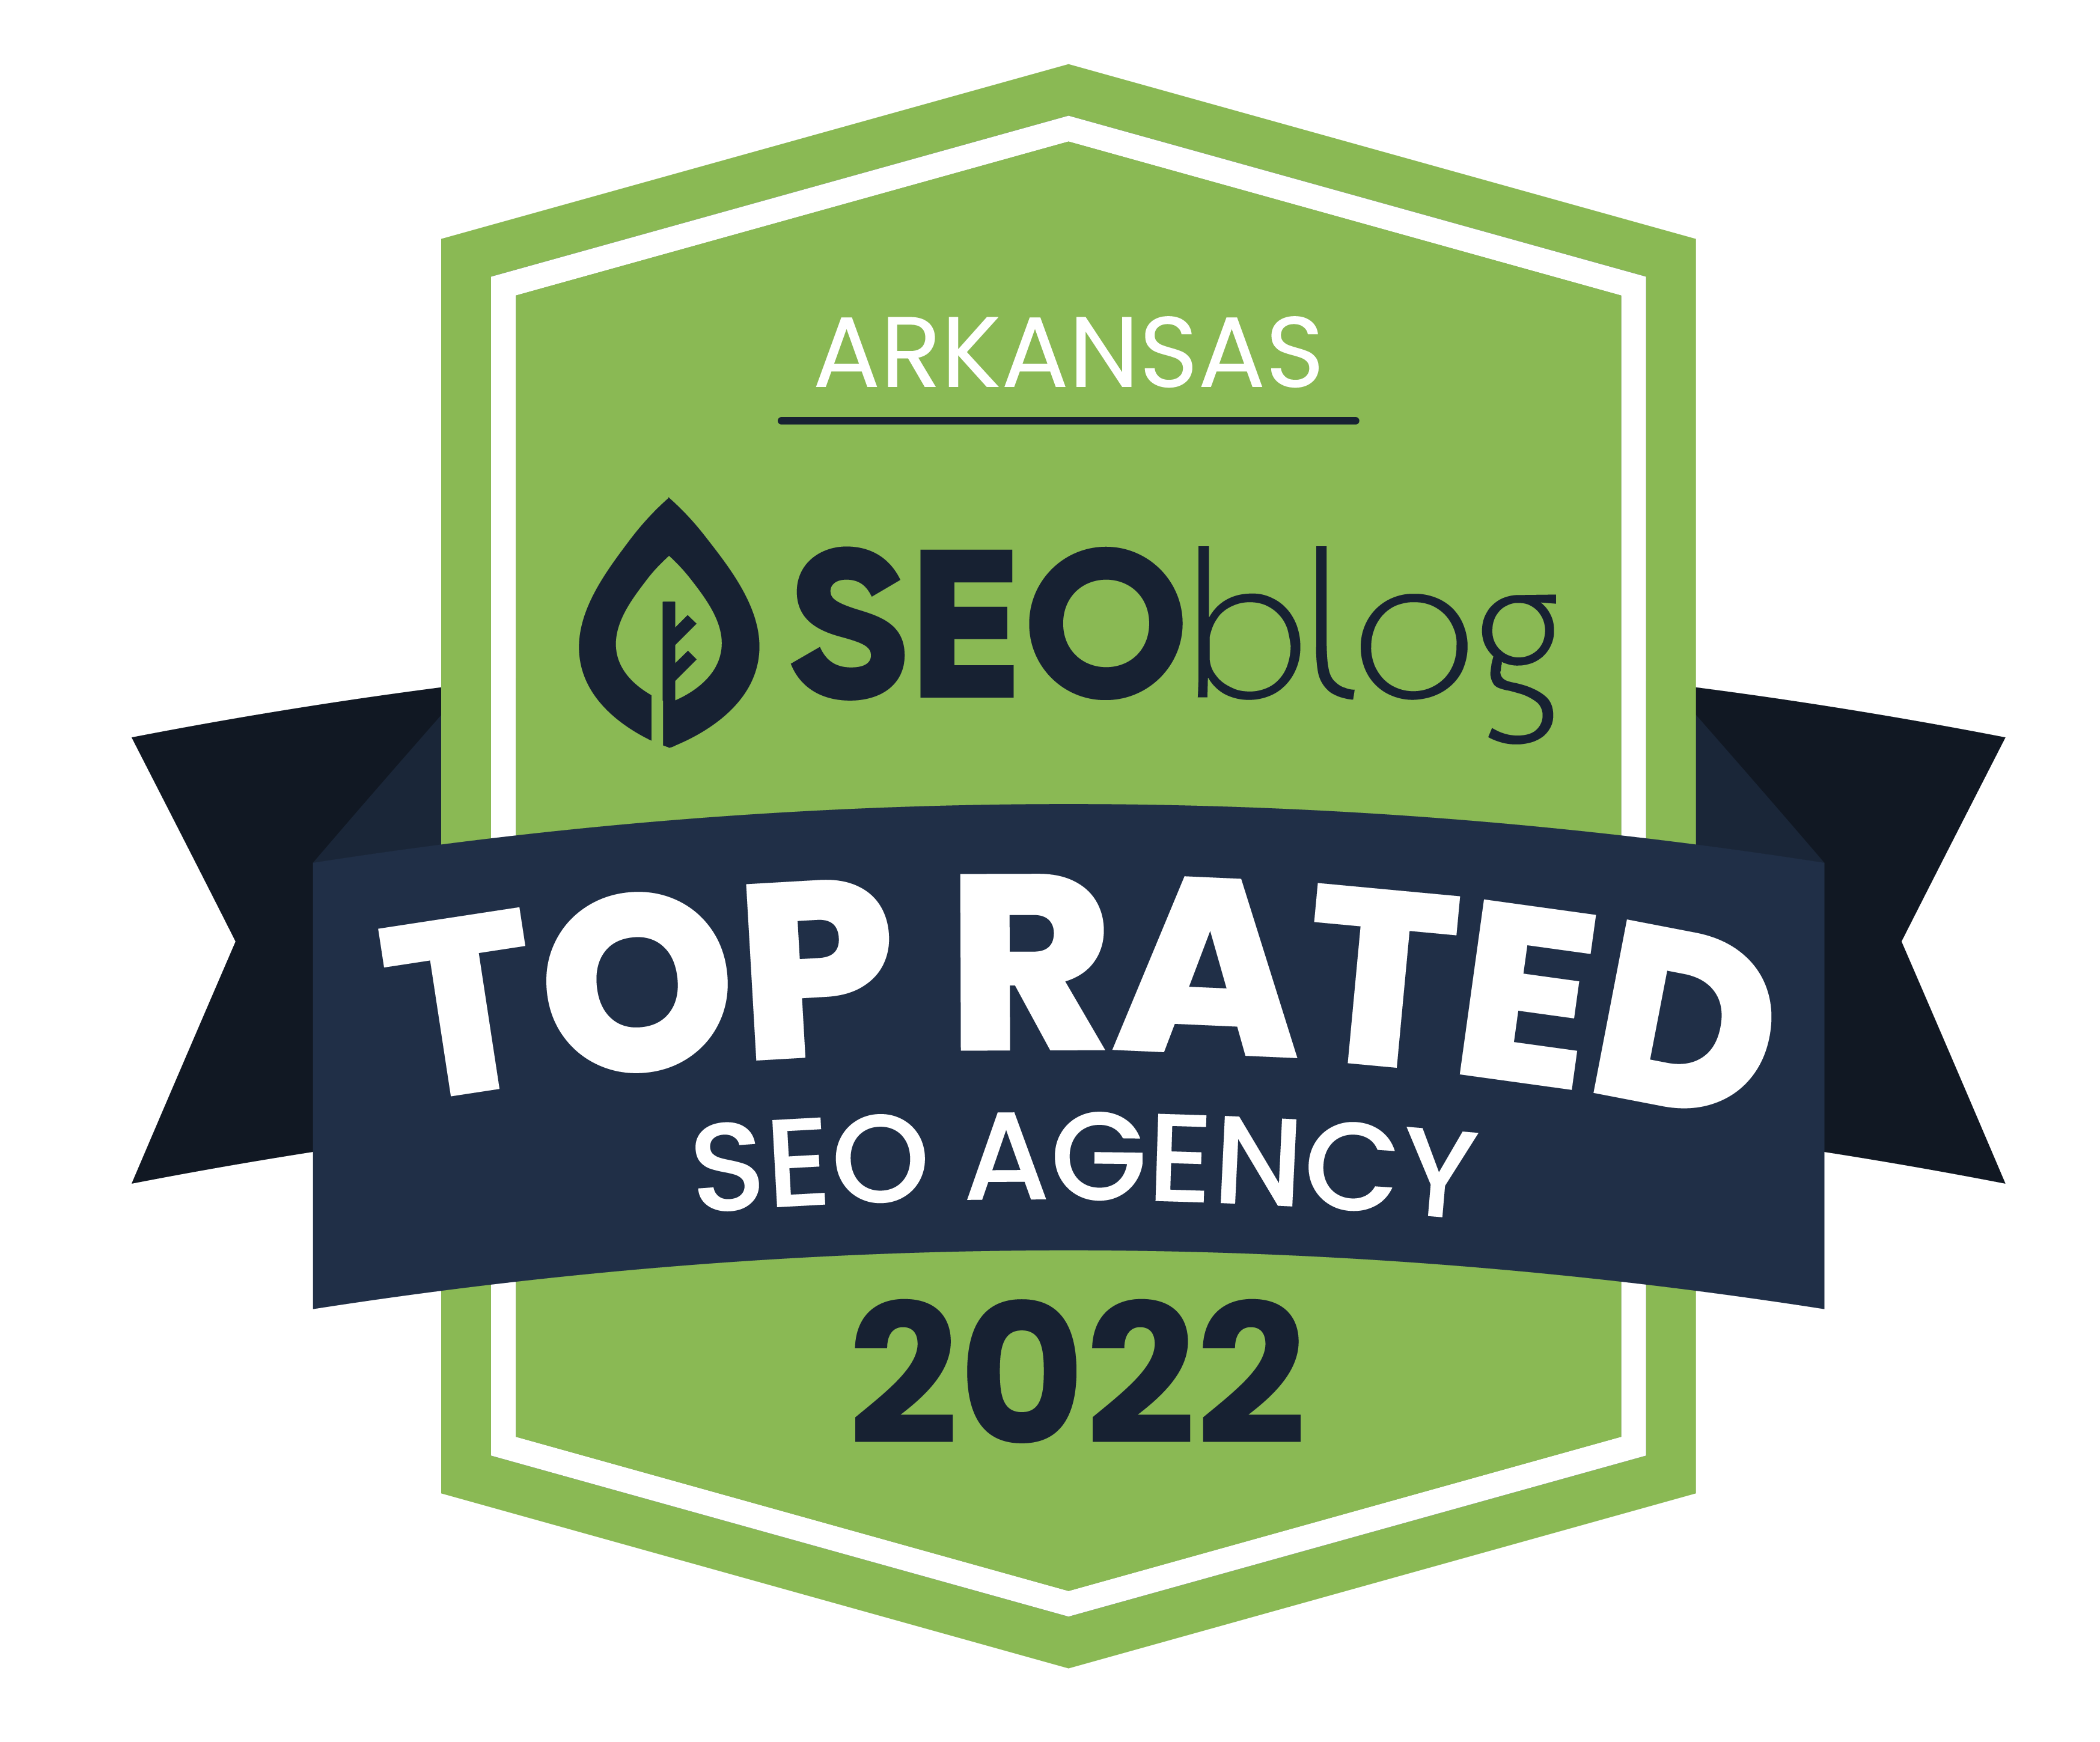 Arkansas SEO Agency